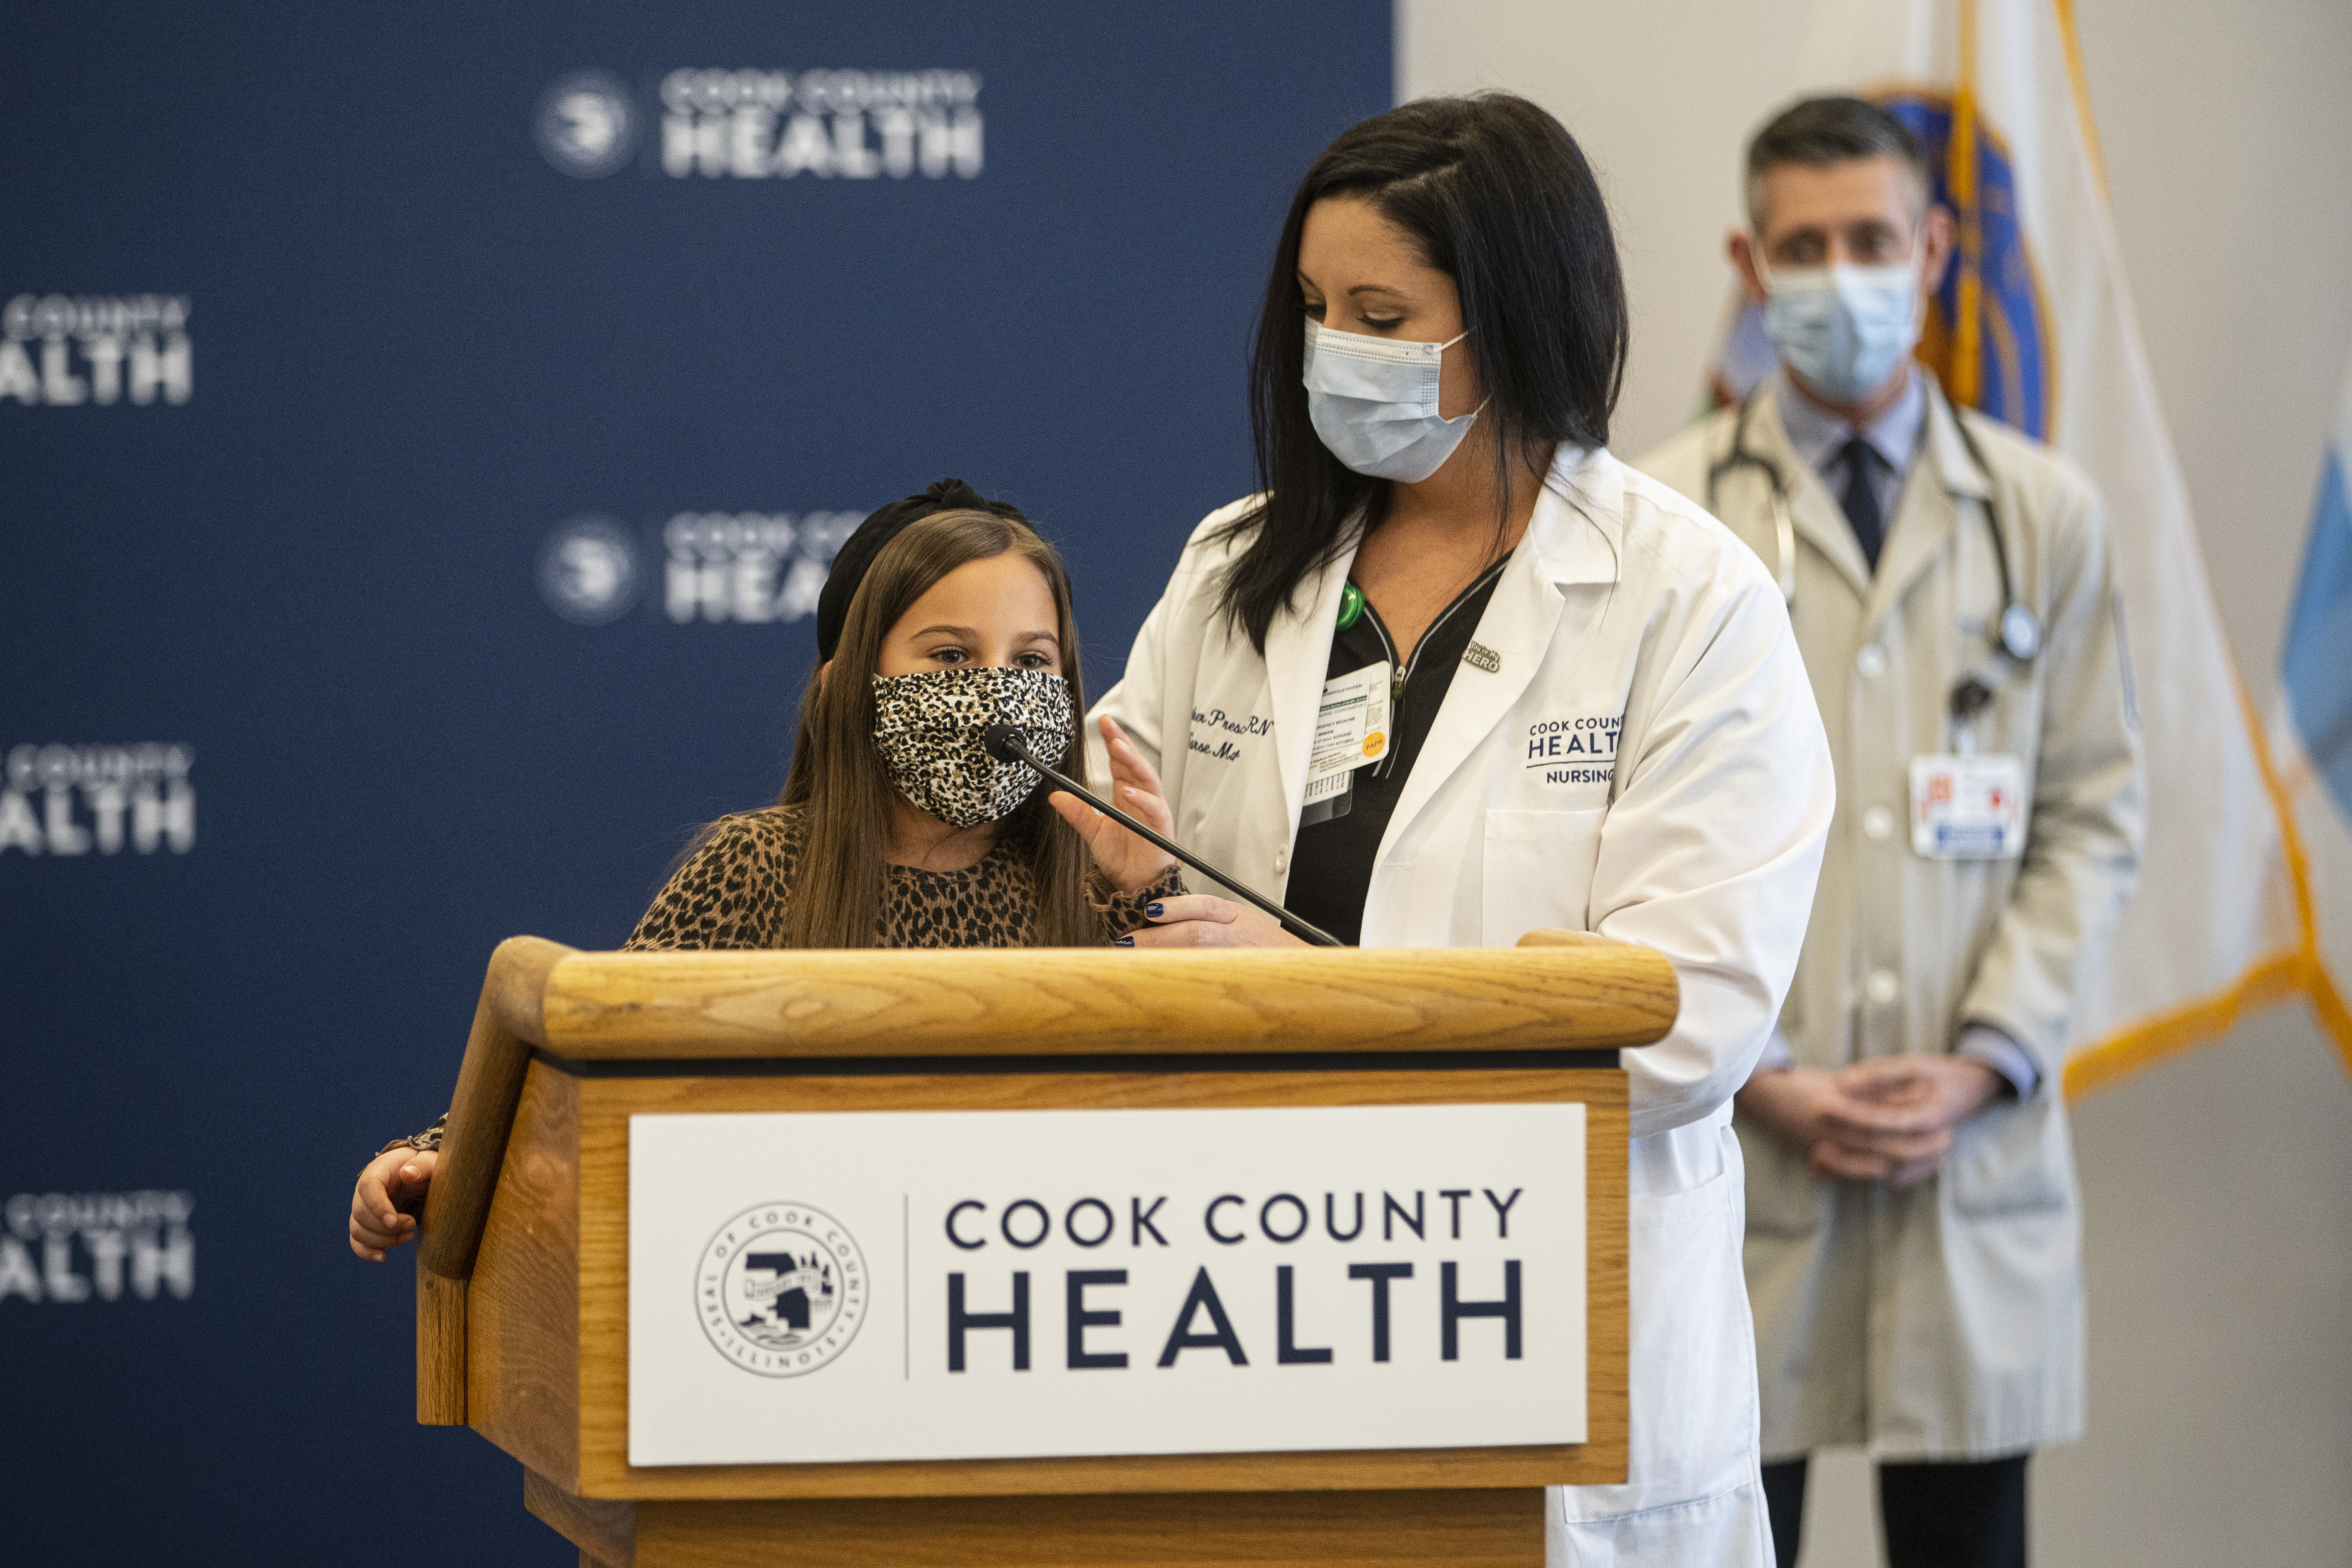 Mia Lopez, 7, speaks at a news conference Monday, Nov. 23, 2020 organized by Cook County Health. With her is her mom, Heather Prescaro, an emergency department nurse. They and other Cook County Health staff are asking residents to stay at home for Thanksgiving to limit the spread of the coronavirus.